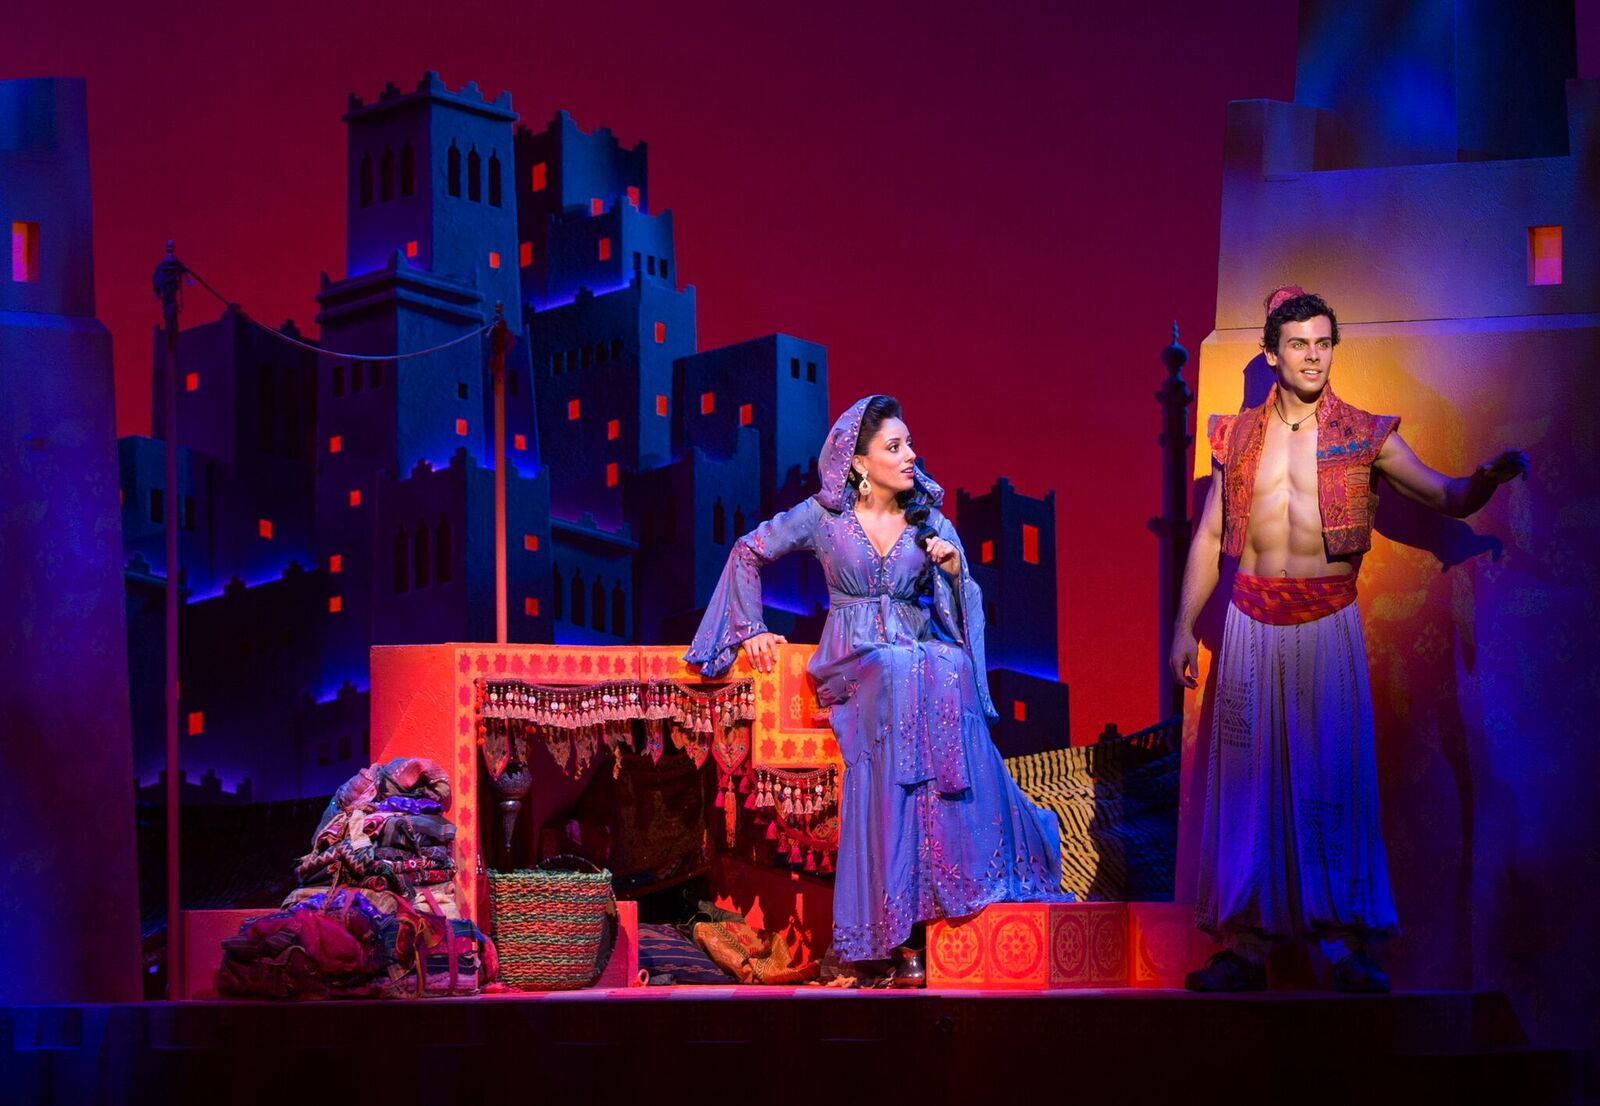 Aladdin-Jasmine_Ainsley_Melham_and_Hiba_Elchikhe_Photo_By_Jeff_Busby